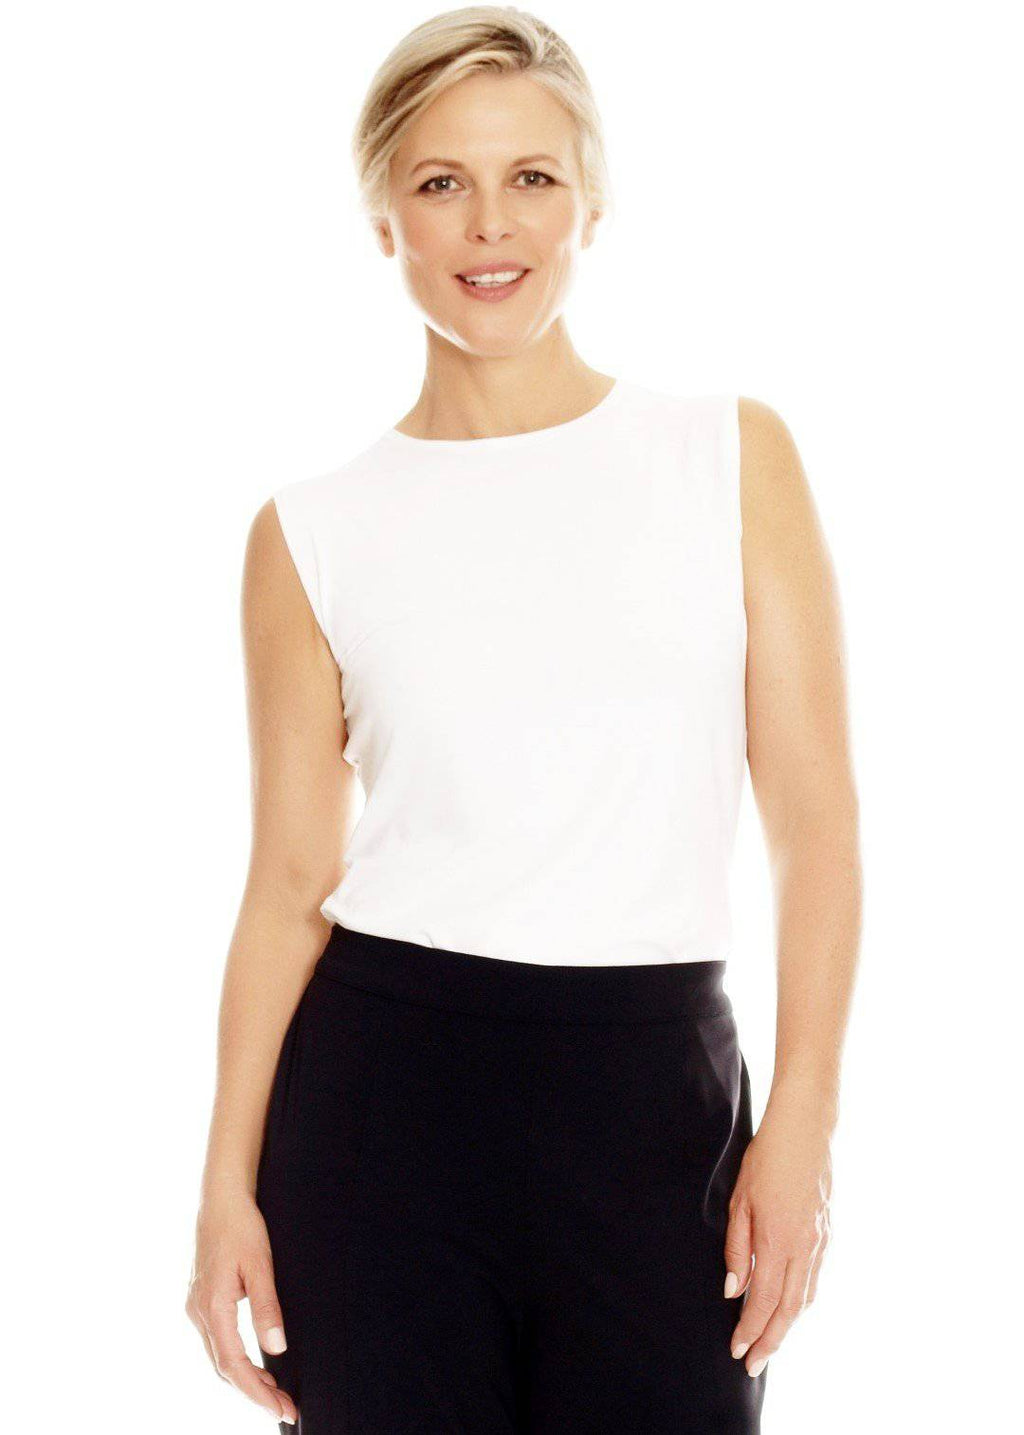 PAULA RYAN ESSENTIALS Slim Fit Sleeveless Crew Neck Top - MicroModal - Top - Paula Ryan Essentials - Paula Ryan